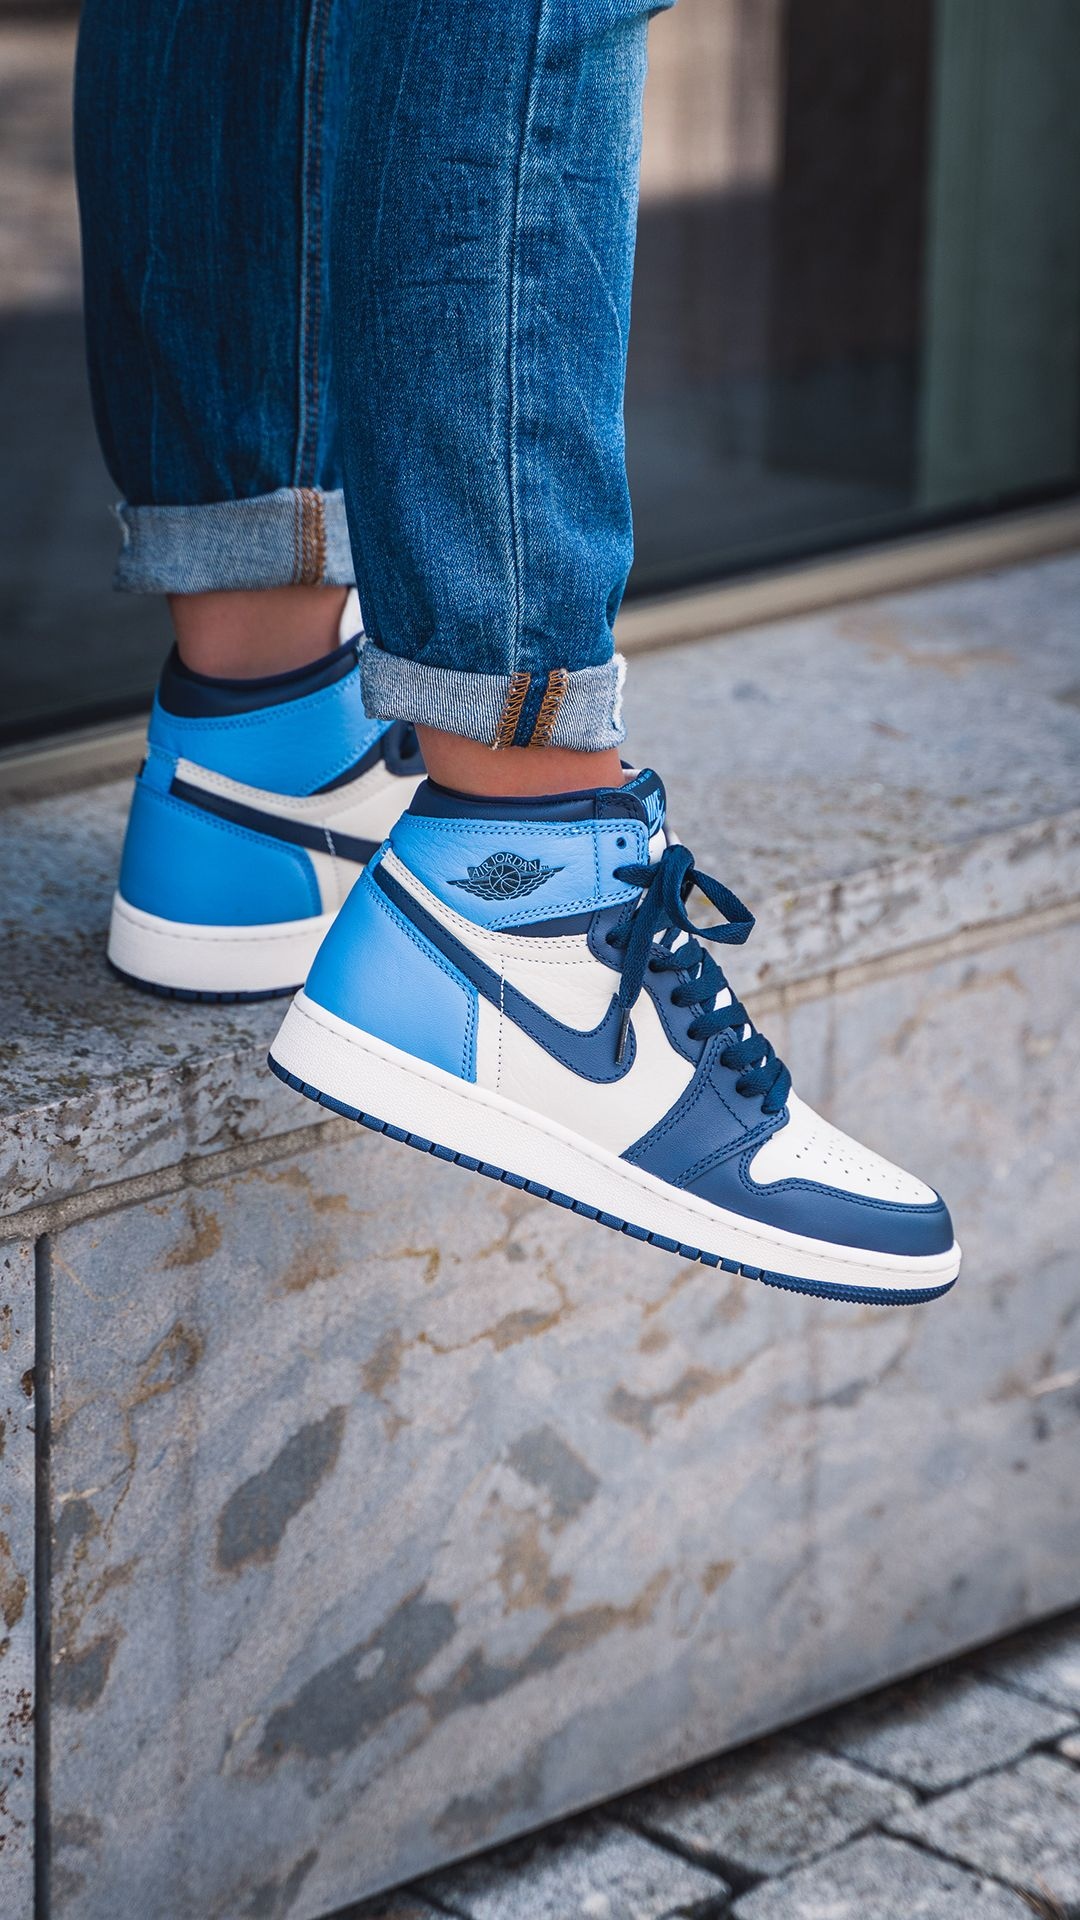 air jordan 1 obsidian unc gs